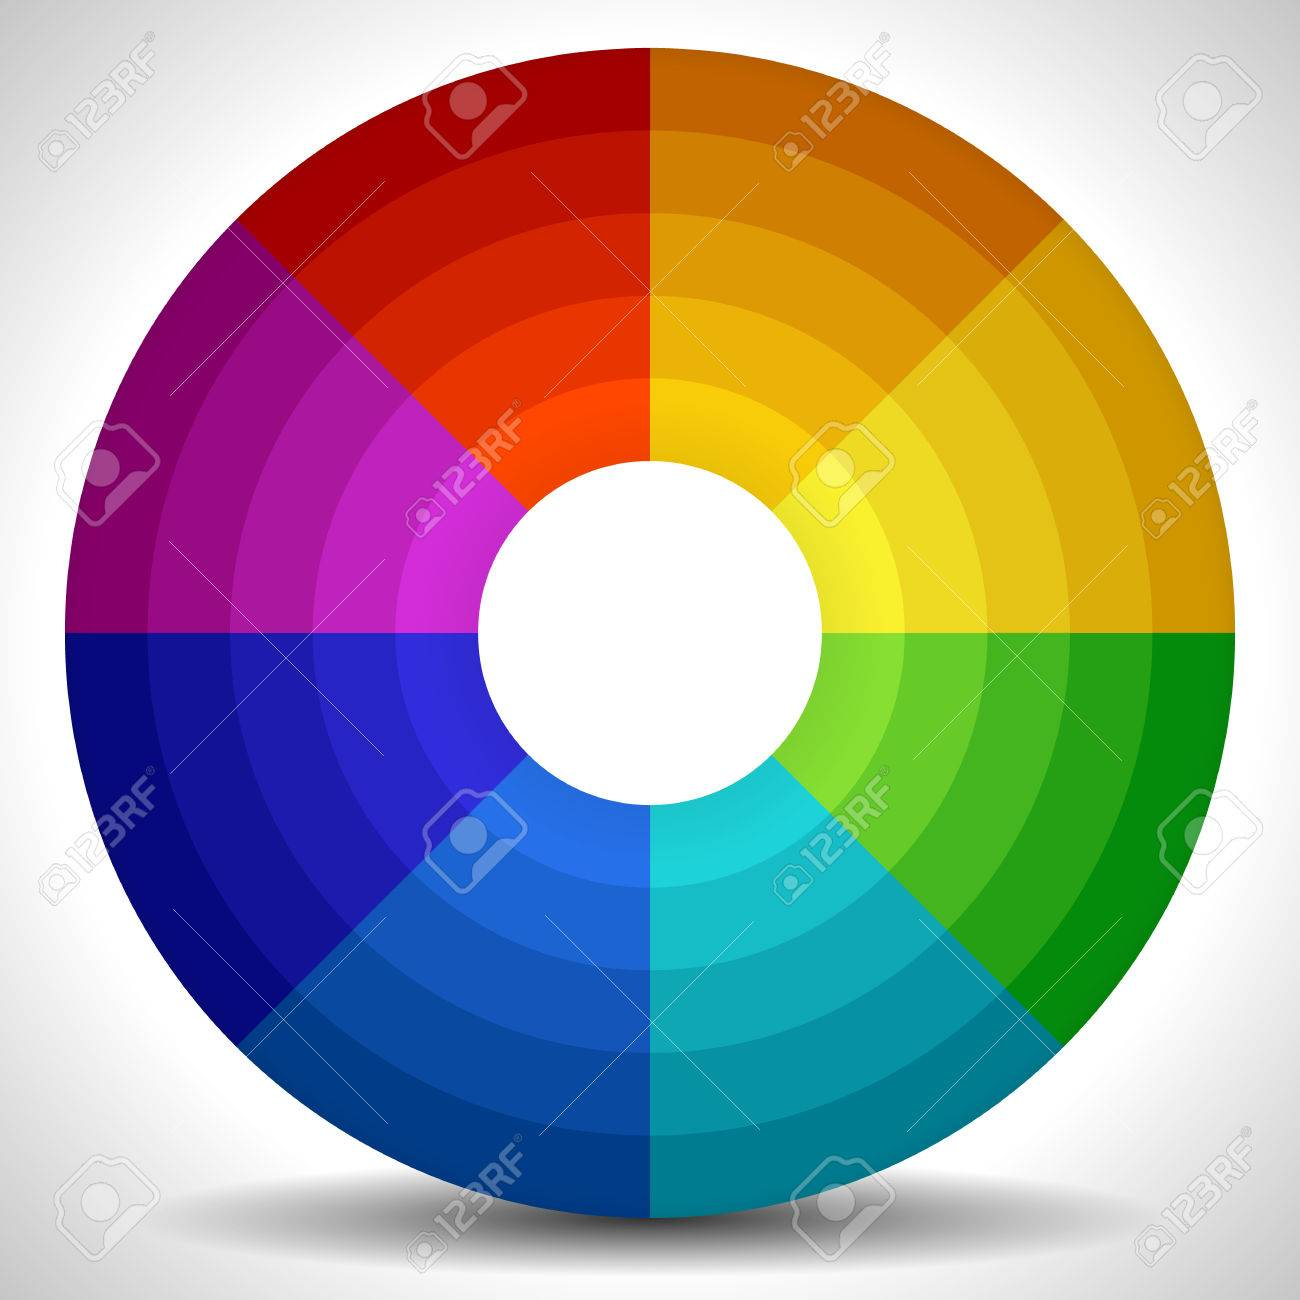 Vector Illustration Of A Circular Color Wheel Palette Stock